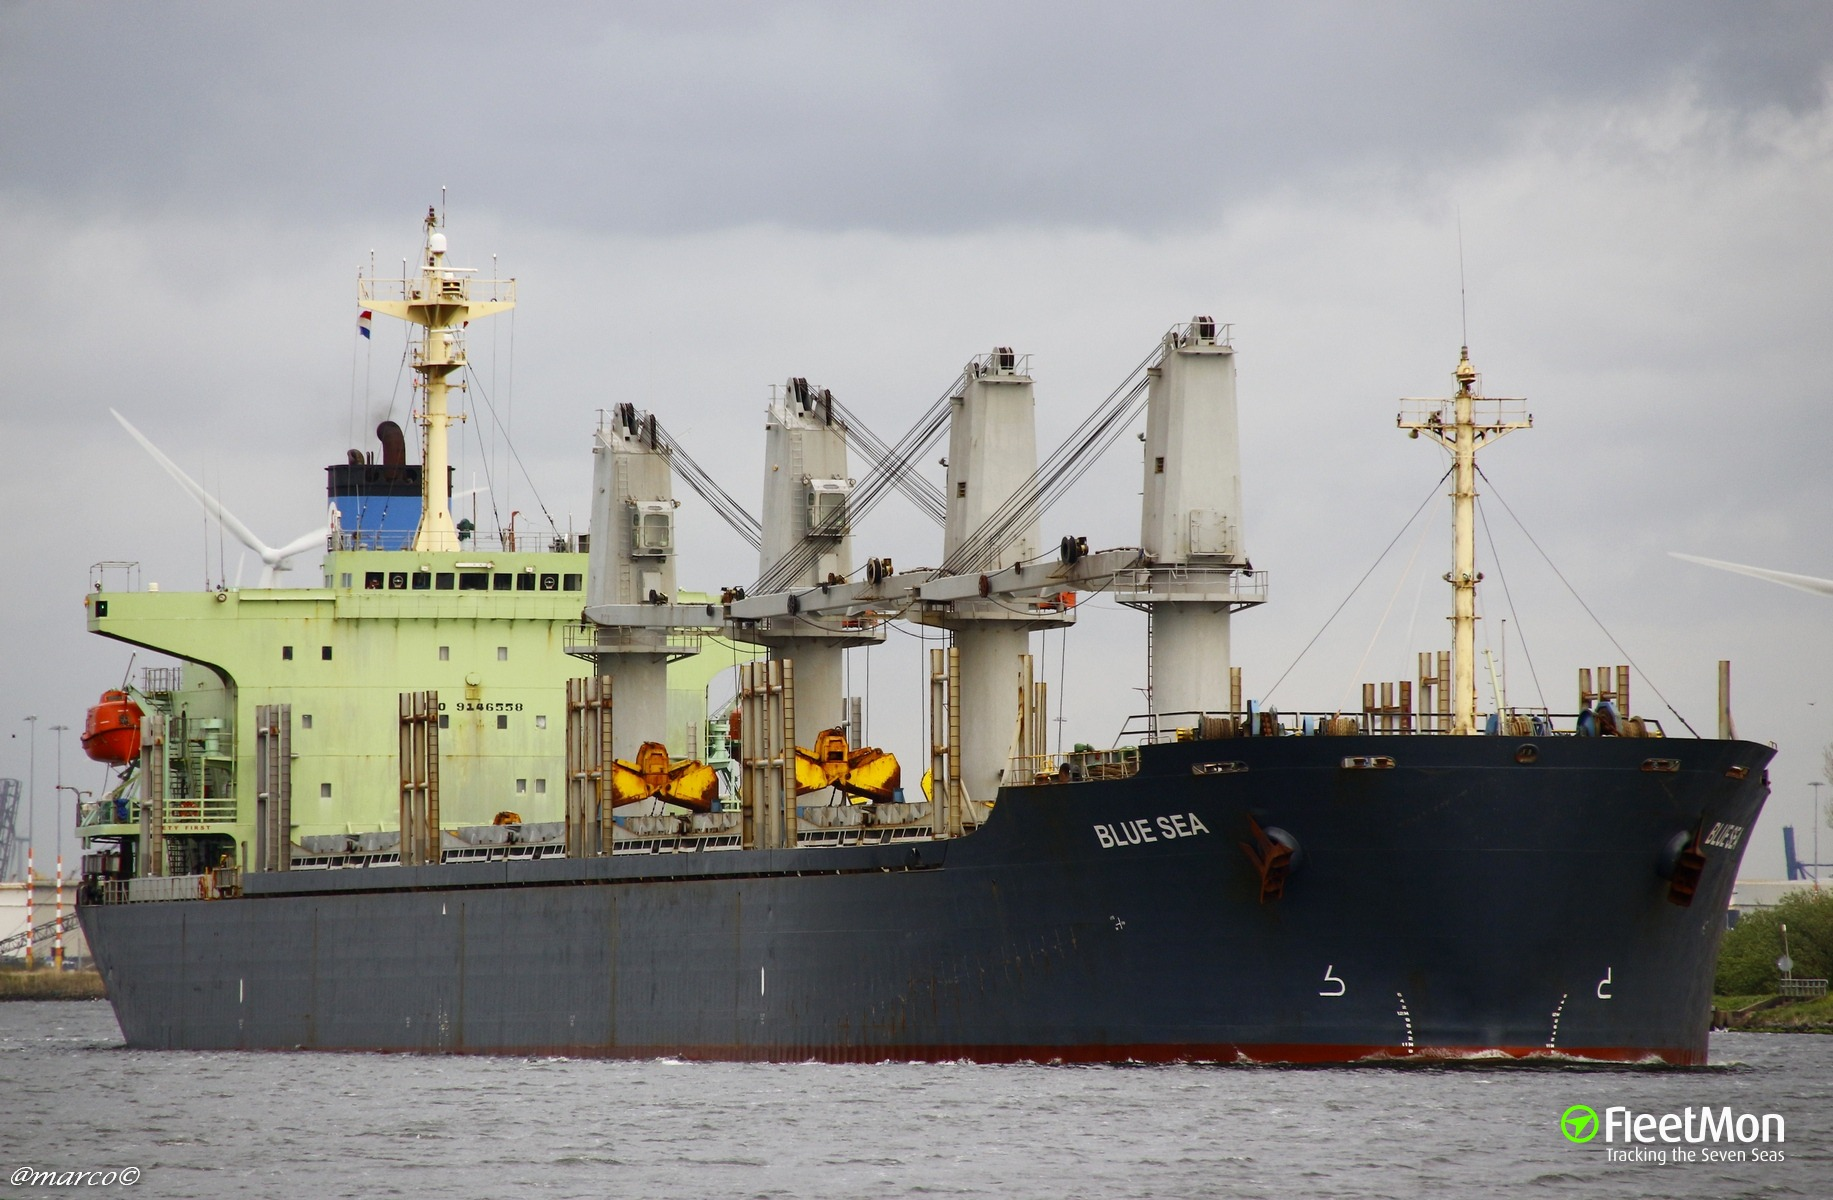 Bulk carrier BLUE SEA under investigation after cocaine bust